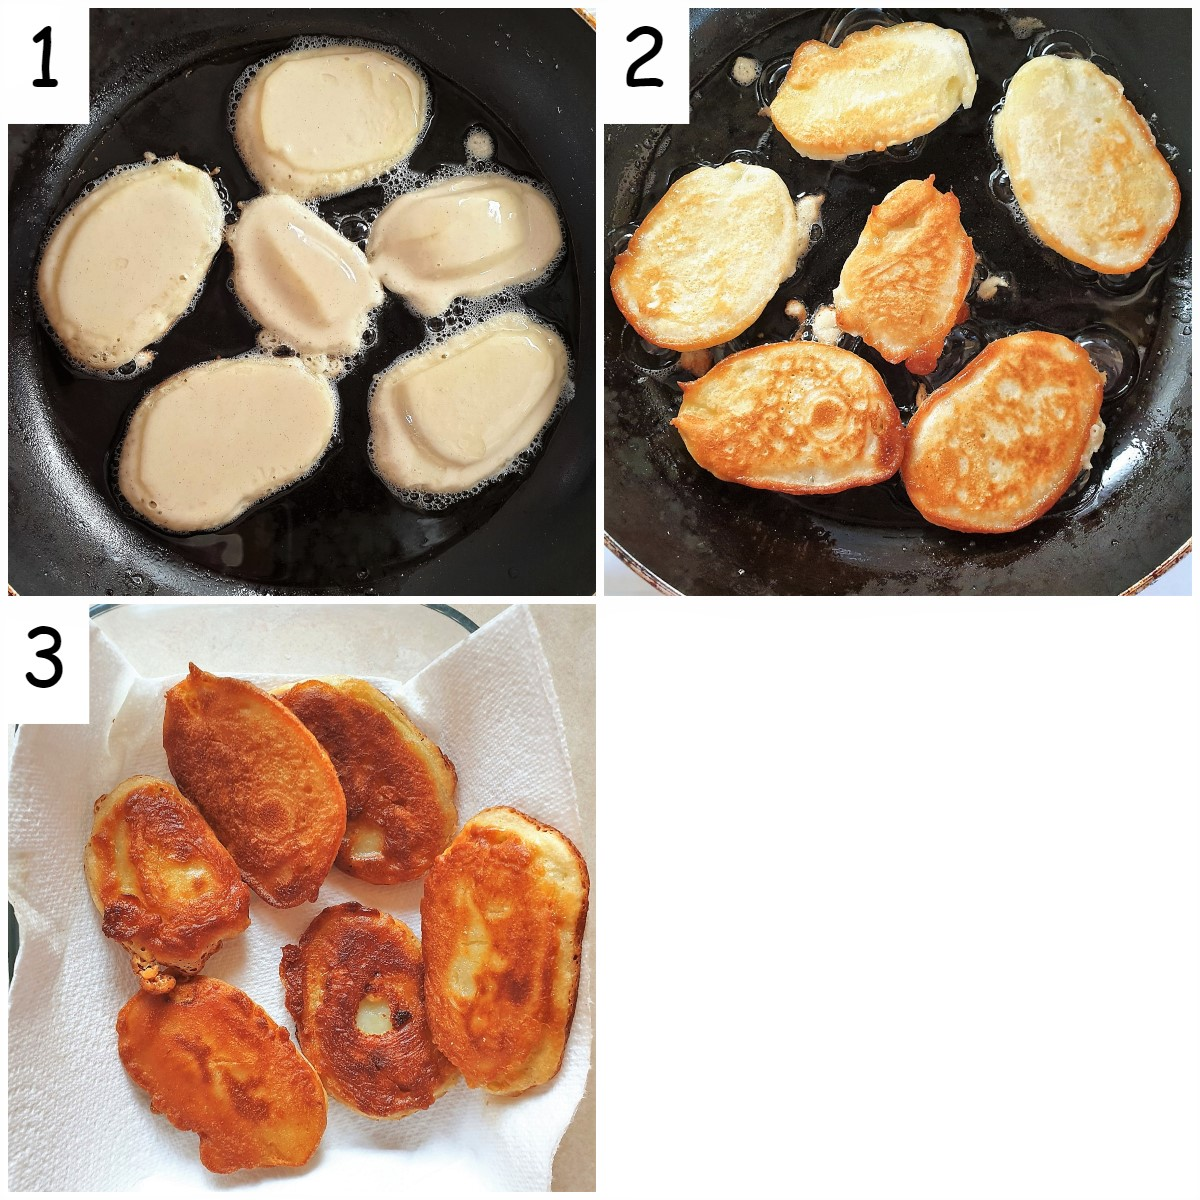 3 images showing steps for frying the scalloped potatoes.